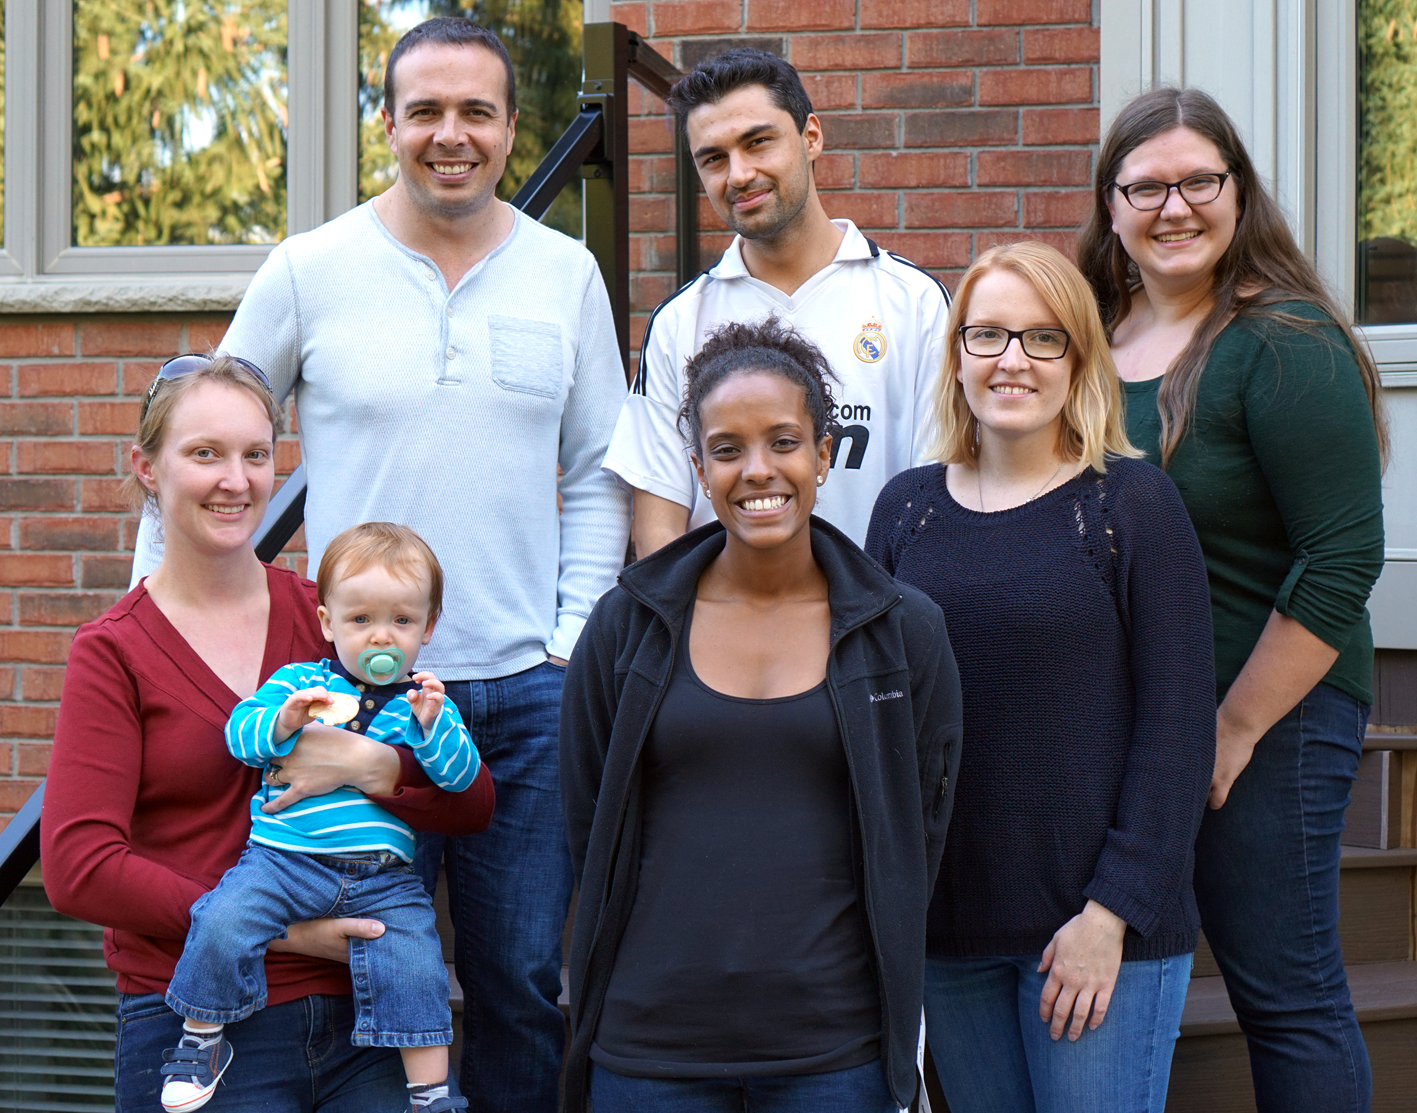 Left to right: Heather (and Owen) - lab tech (and lab baby); Steve - lab head; Yodit - MSc student; Rajiv - PhD Candidate; Kate - Post Doctoral Fellow; Alicia - 4th year Honours Student.